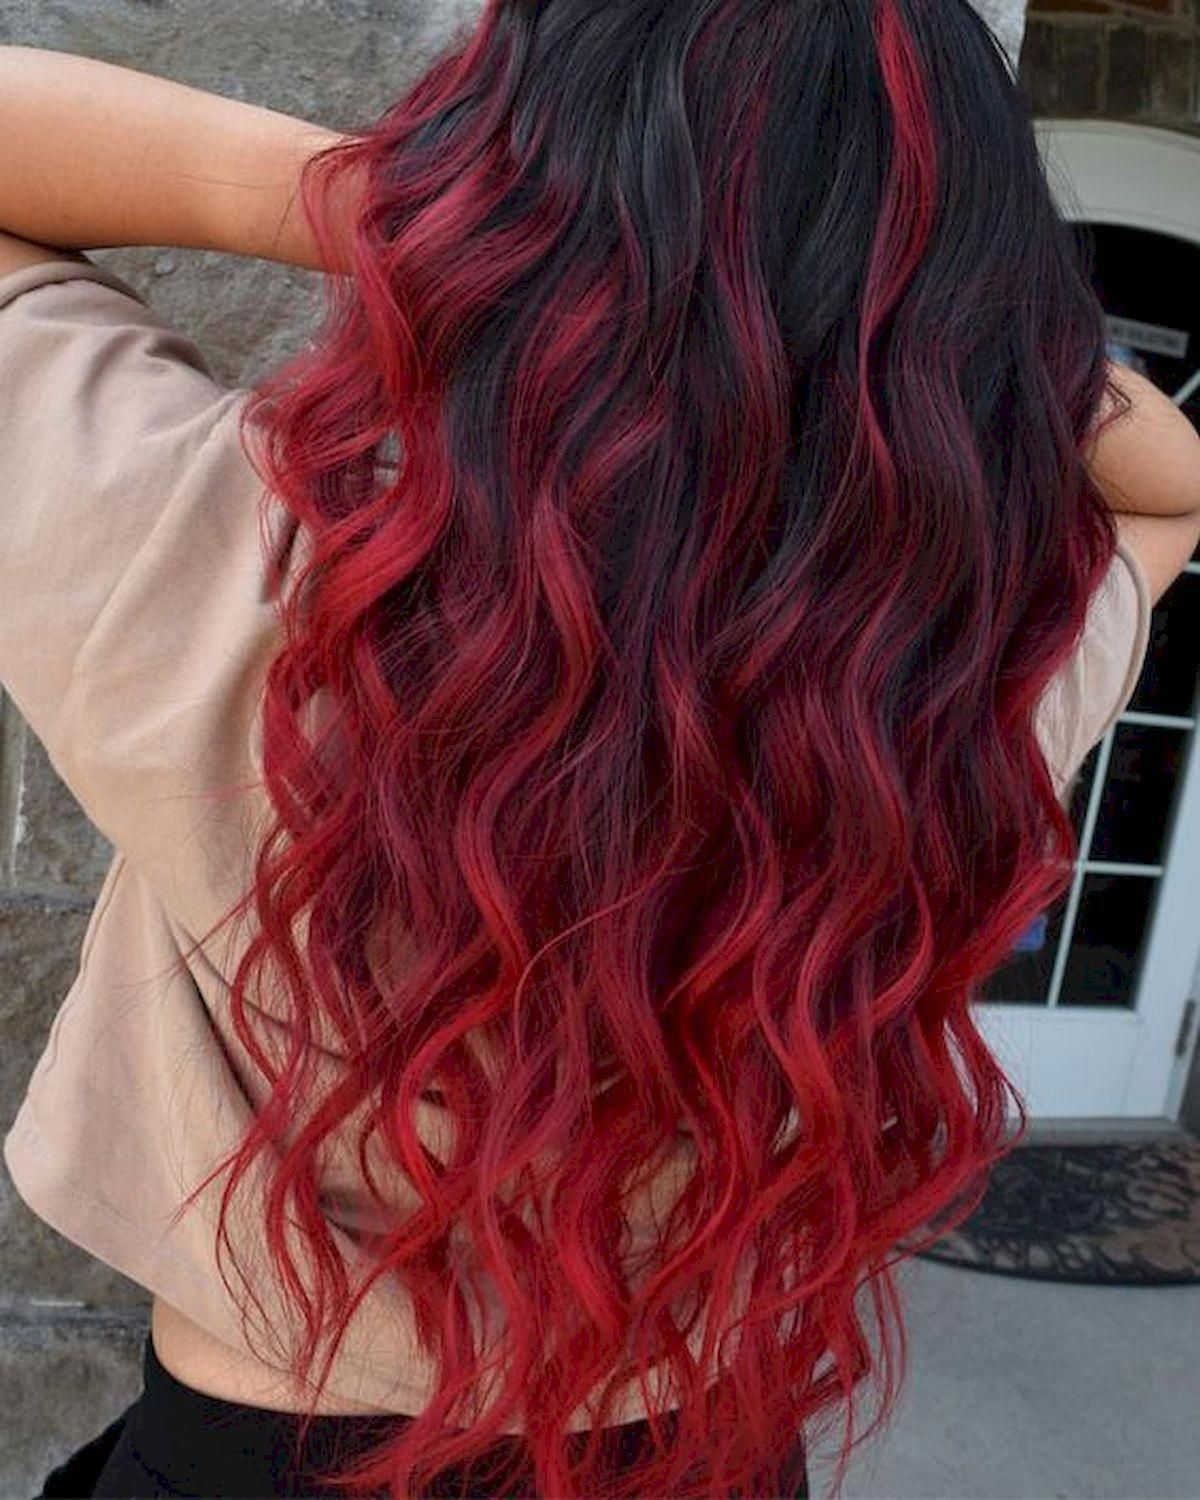 Style Fashion Red Hair Colorful Color Hairstyle Ideas Natural Bright Dark Makeup Updos Outfit Grunge Dark Blonde I Hair Styles Red Balayage Hair Red Ombre Hair